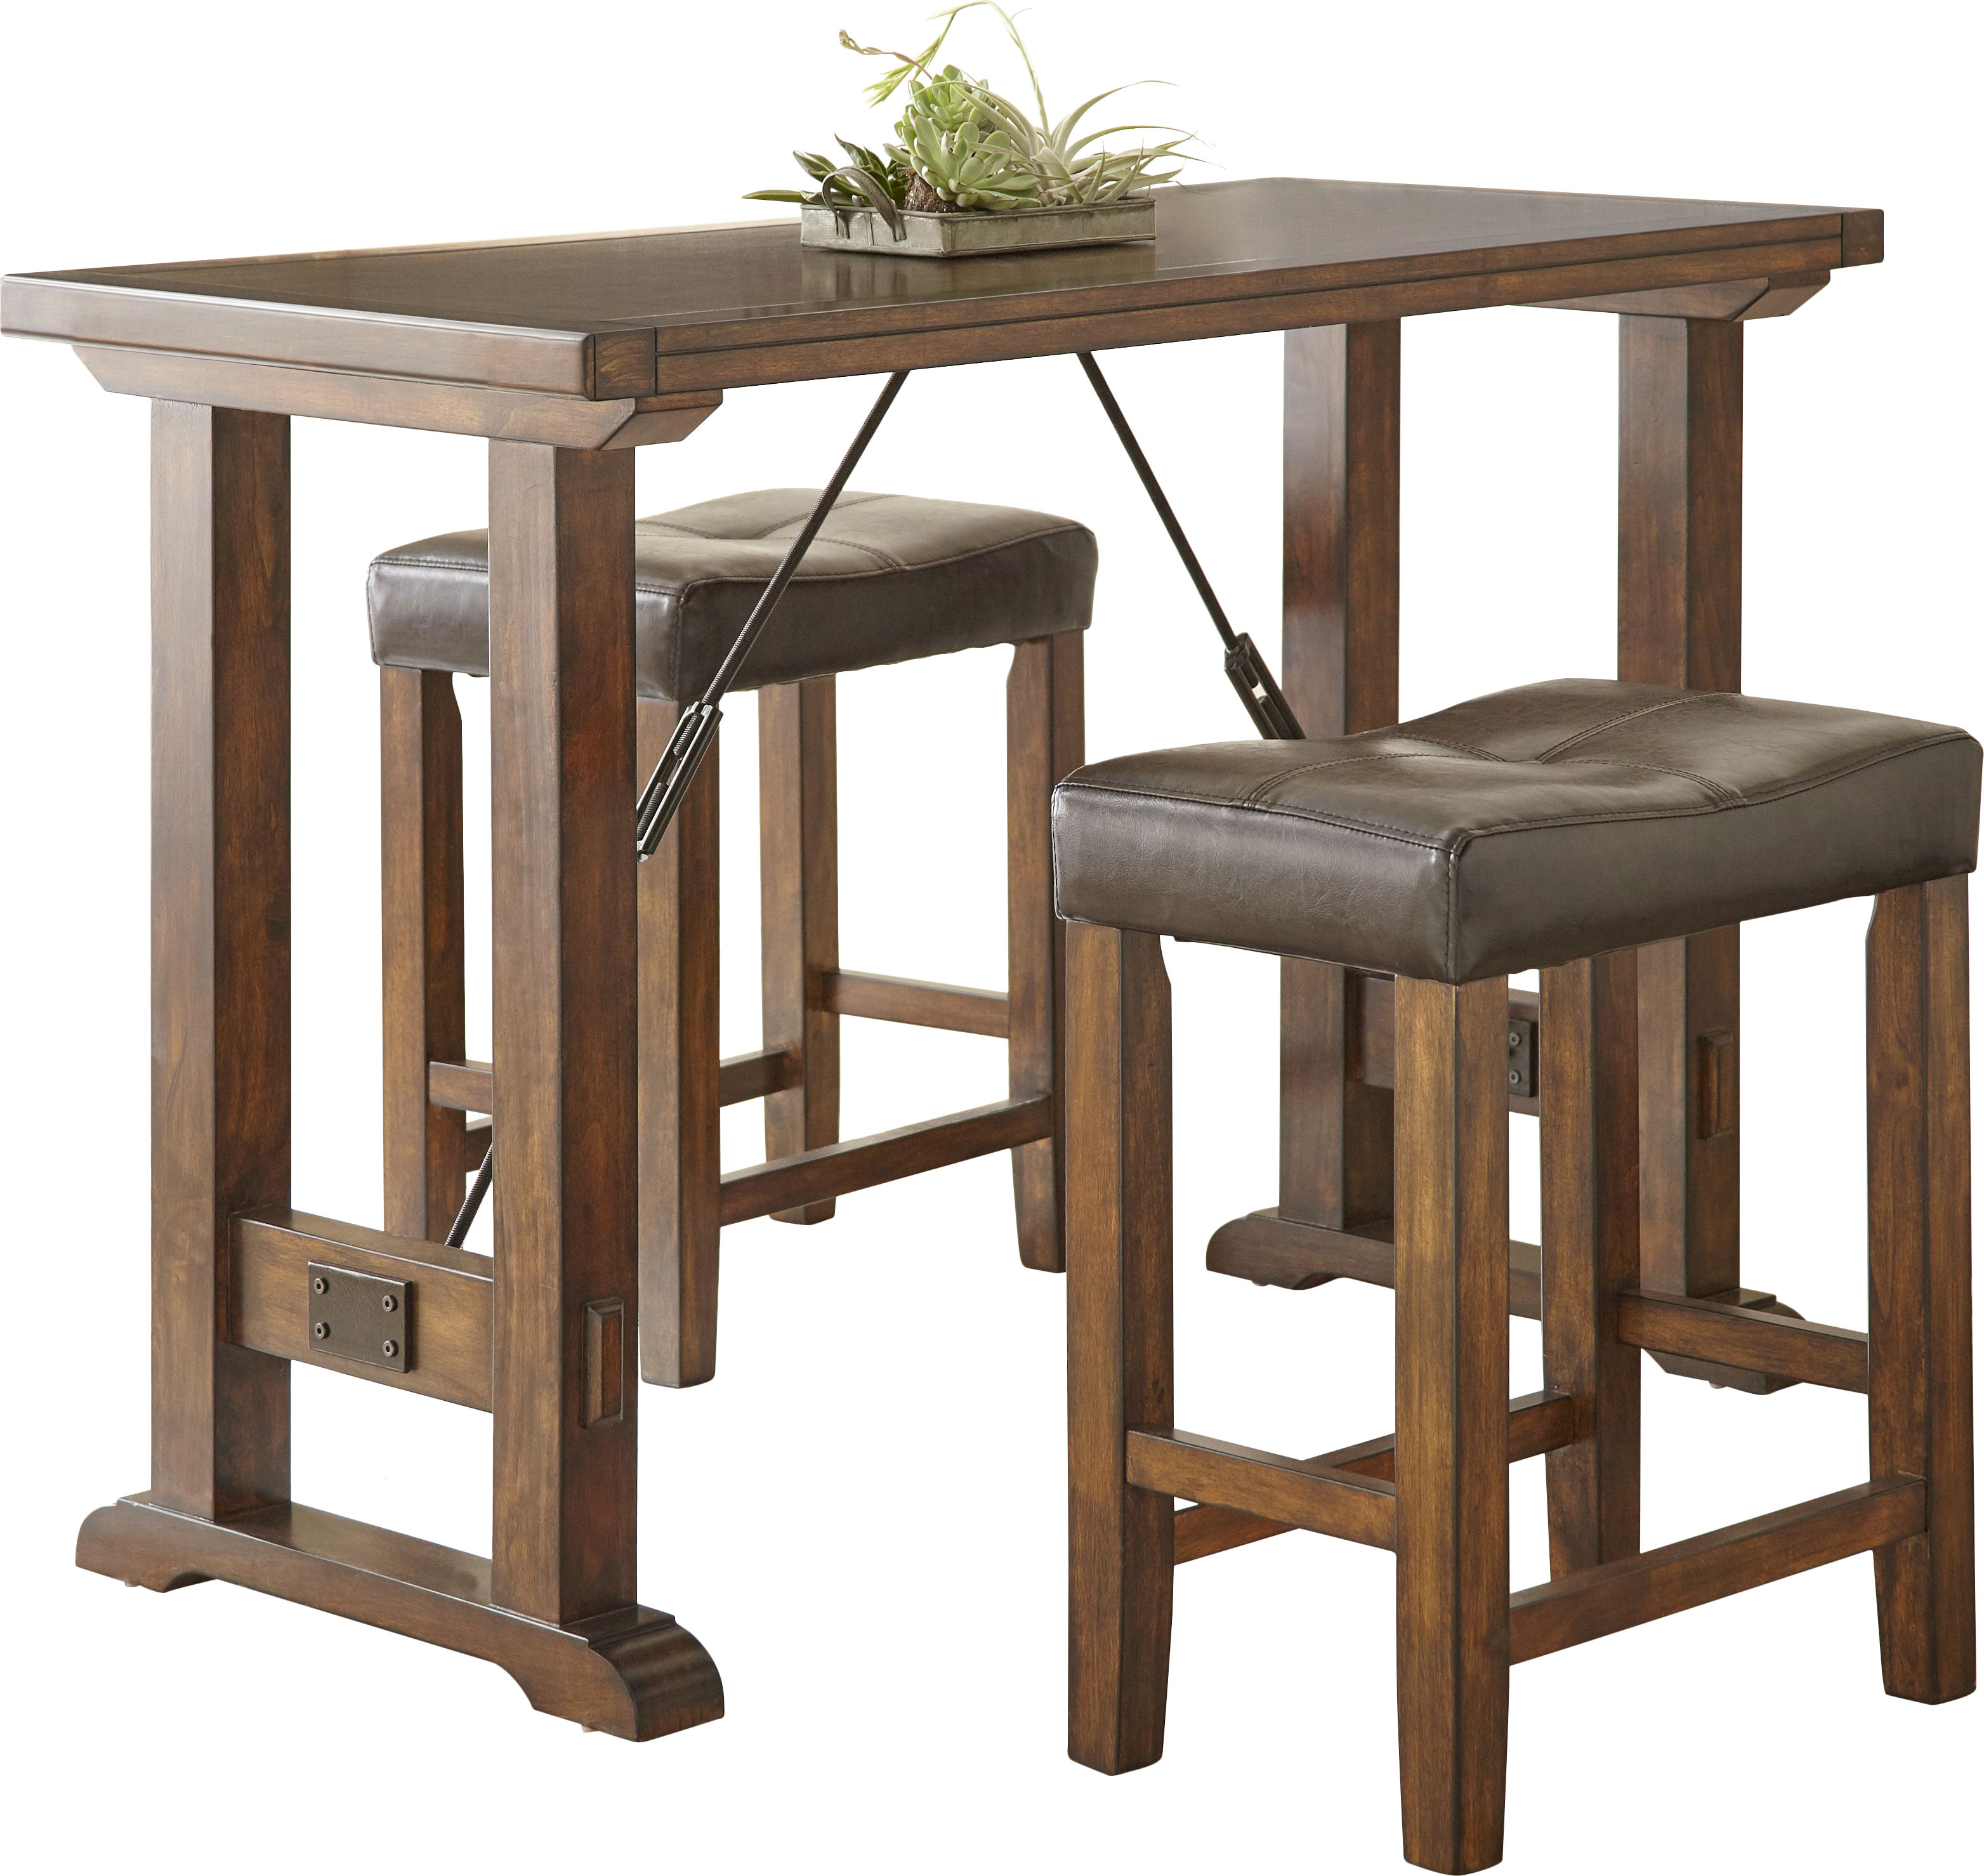 Trendy Alcott Hill Norrell 3 Piece Counter Height Dining Set & Reviews In Poynter 3 Piece Drop Leaf Dining Sets (View 2 of 25)